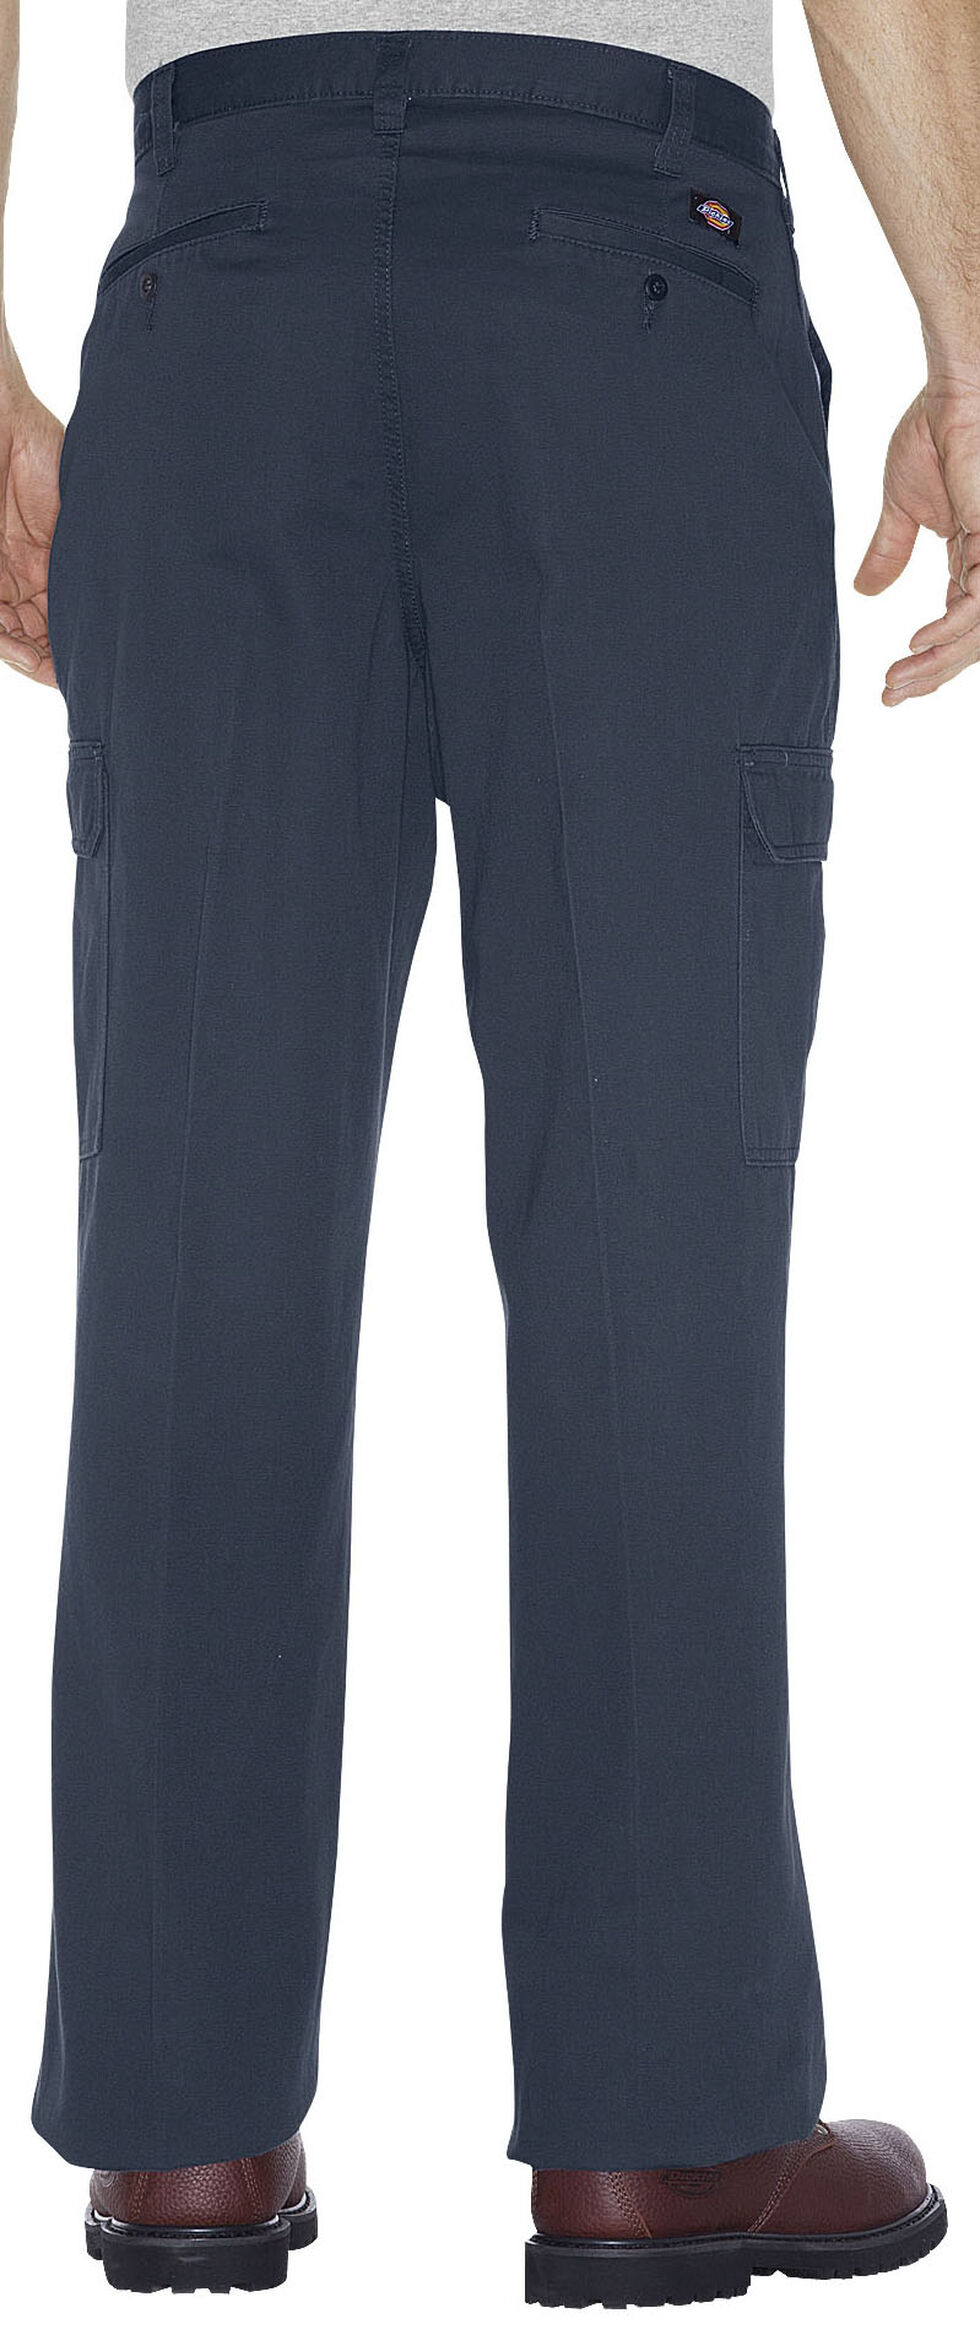 Dickies Loose Fit Cotton Cargo Pants - Big and Tall, Navy, hi-res